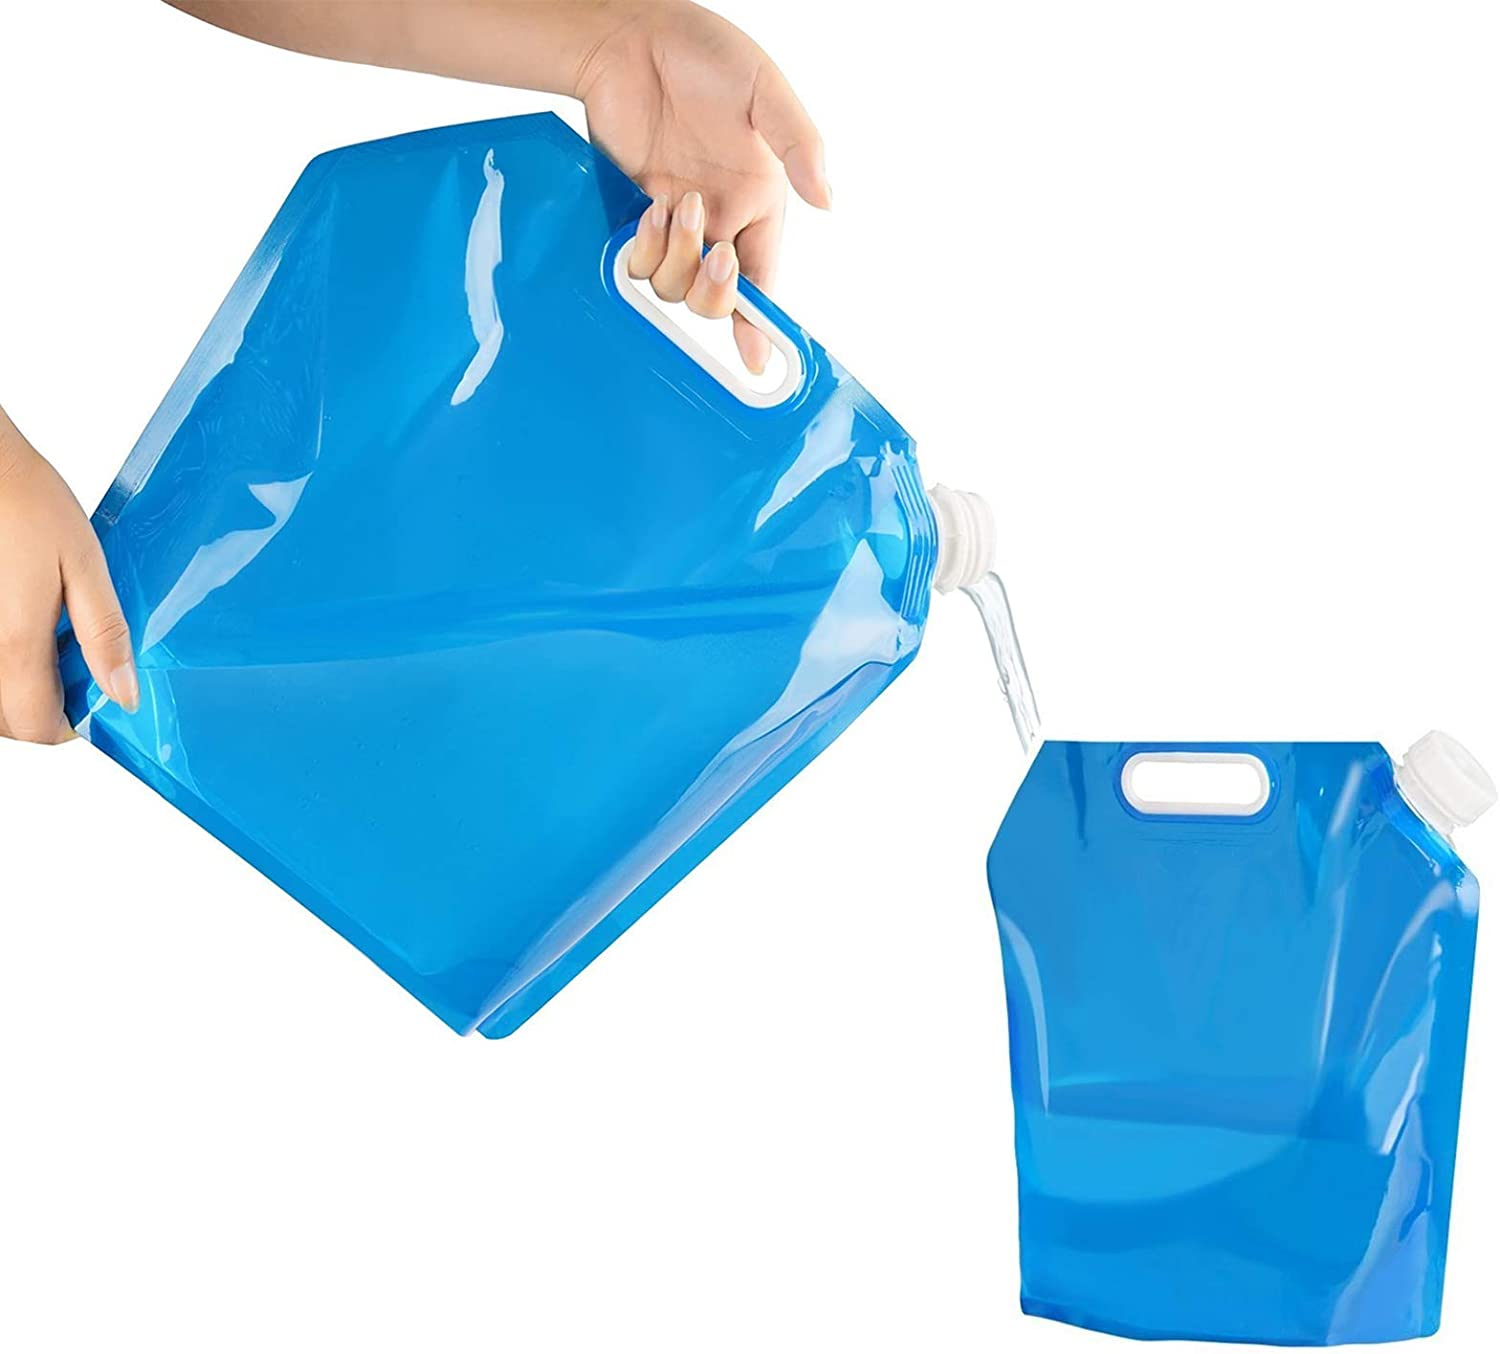 Water Bags Storage 5L 10L Collapsible Water Container Foldable Portable for Camping, Hiking, Picnic, Travel, BBQ : Sports & Outdoors